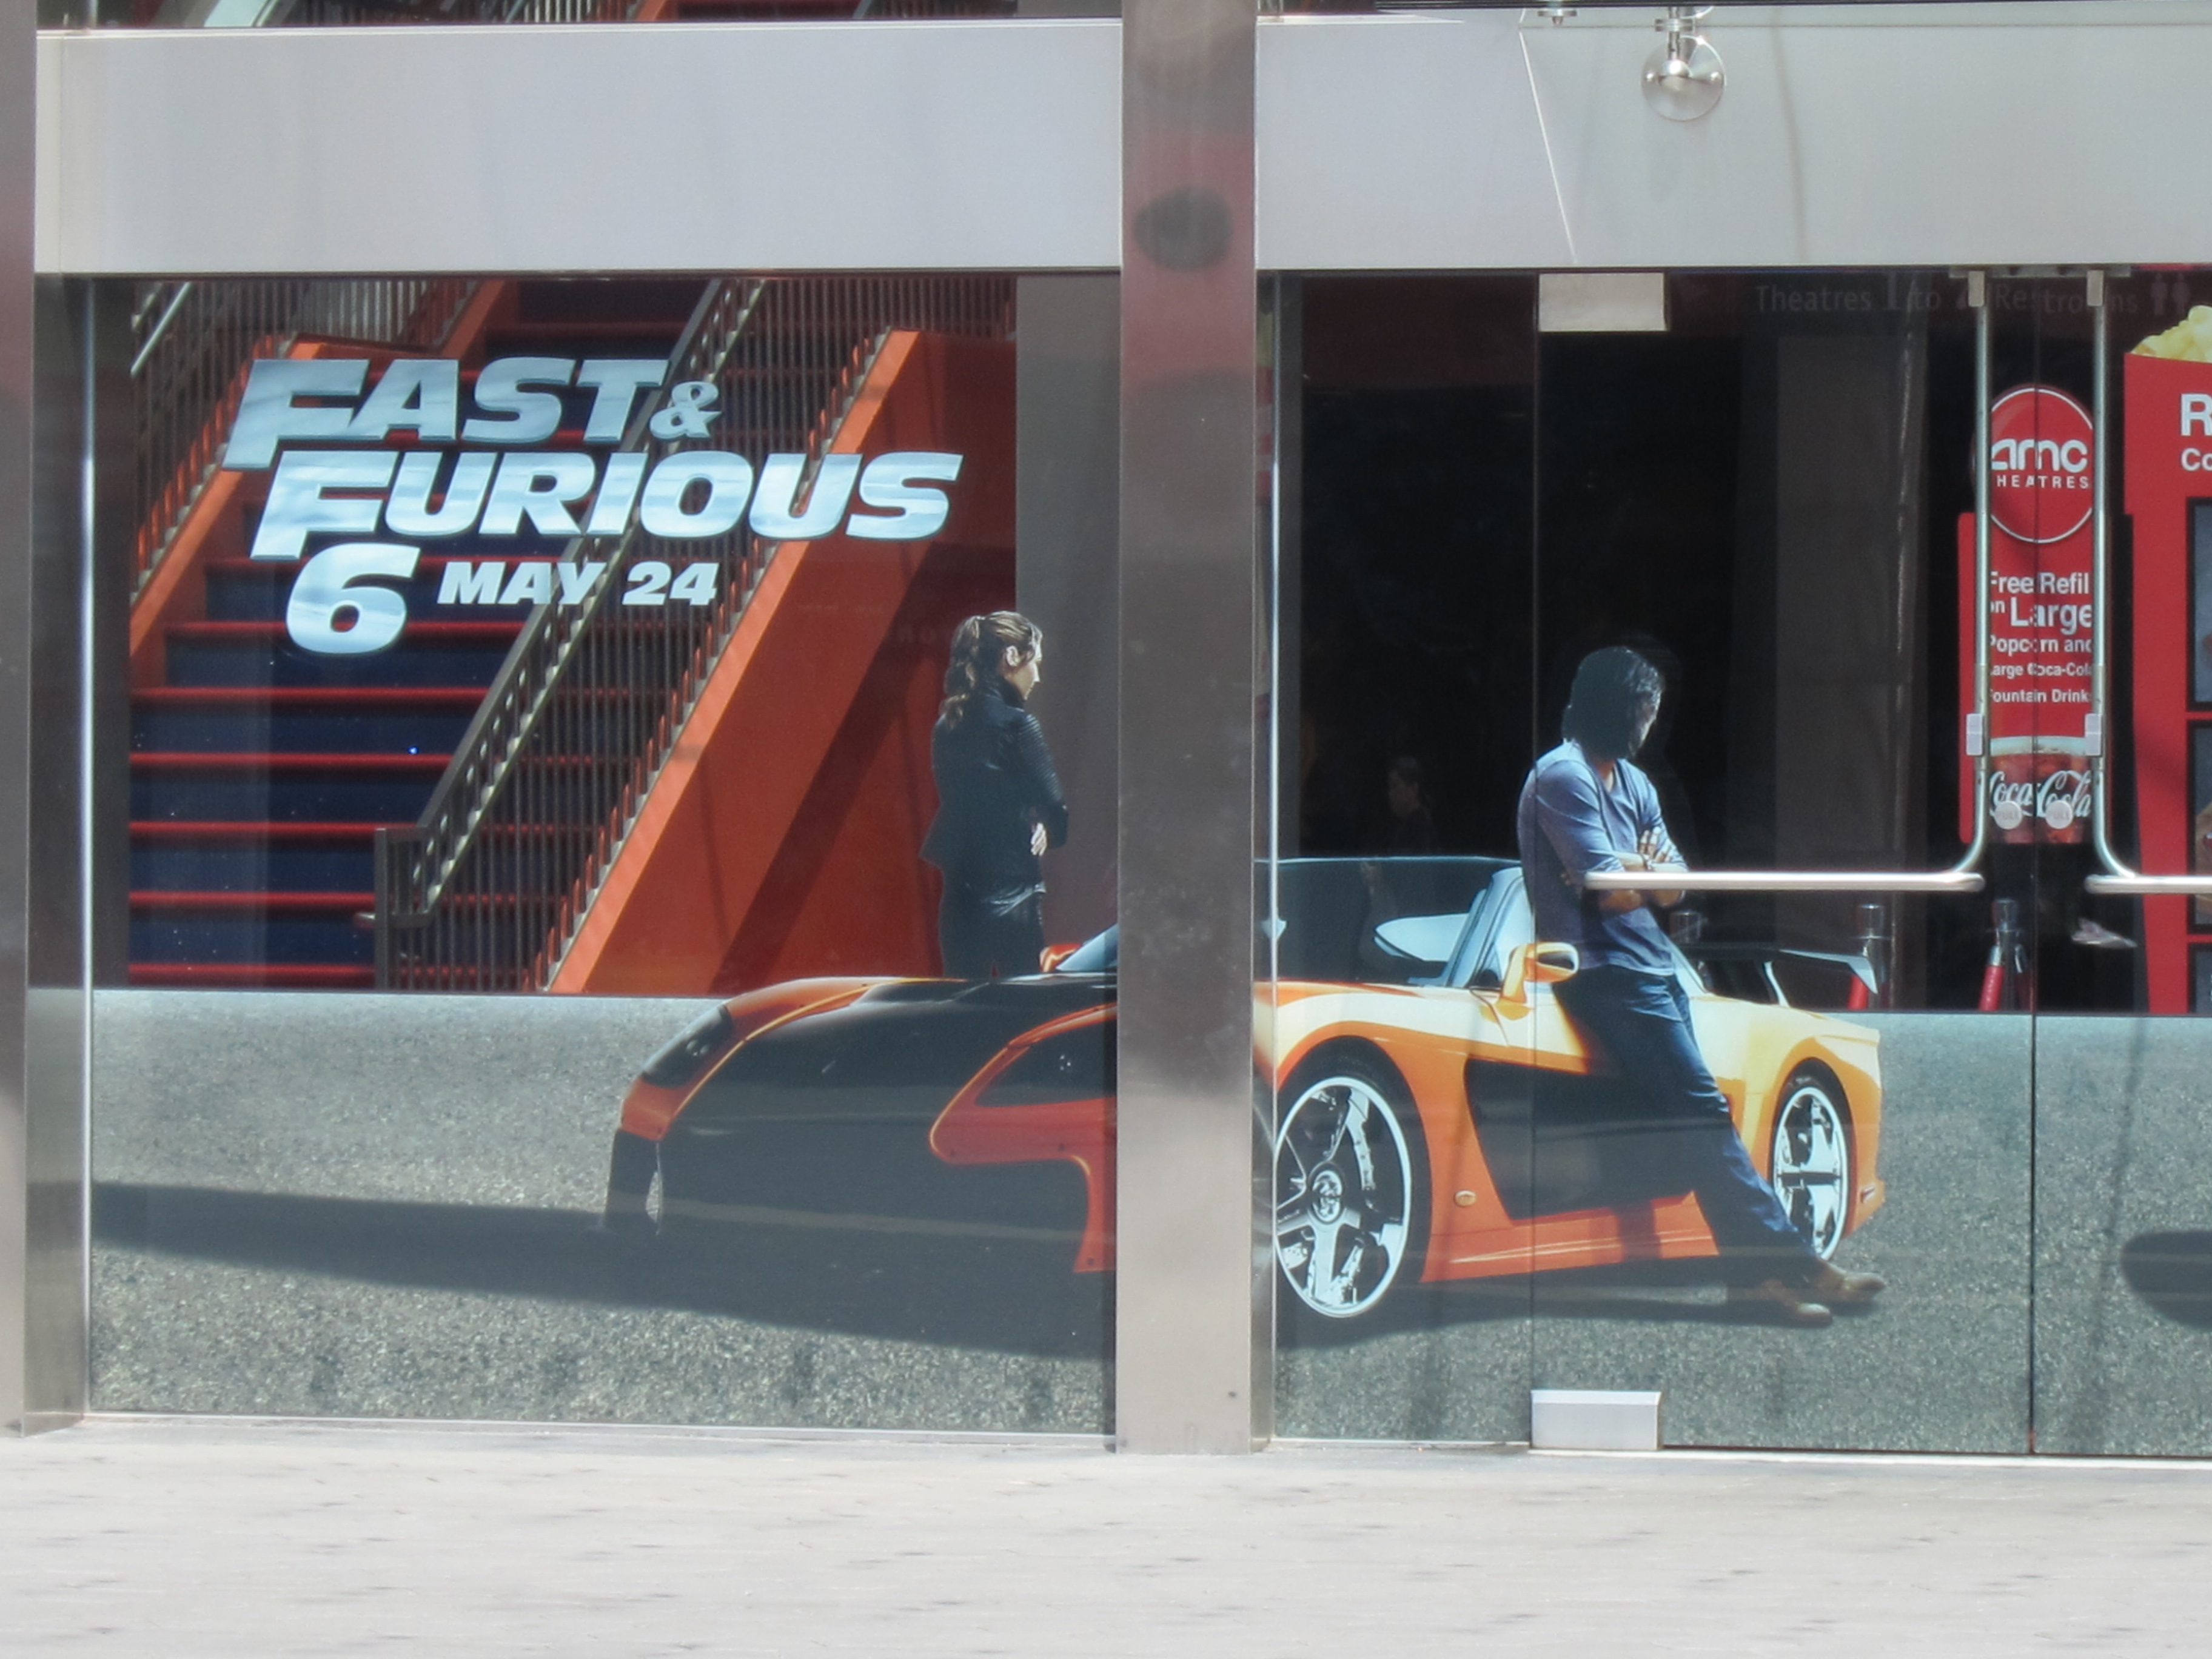 FAST AND FURIOUS 6 lifelike front window graphics at the AMC Universal CityWalk Cinemas in Southern California.